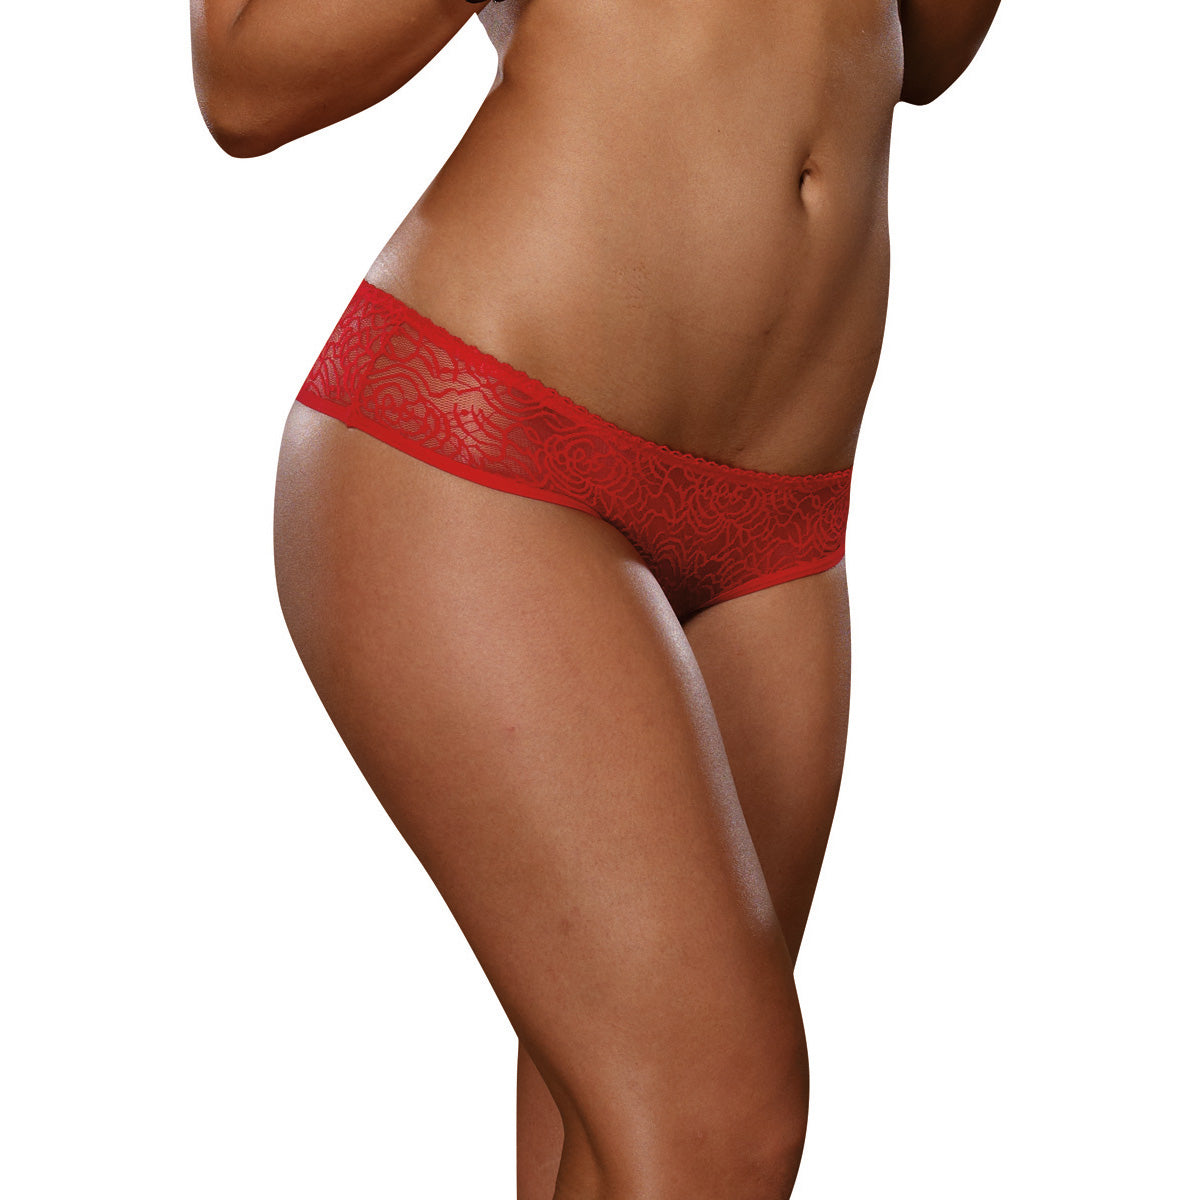 Ruffle Crotchless Panty- Red